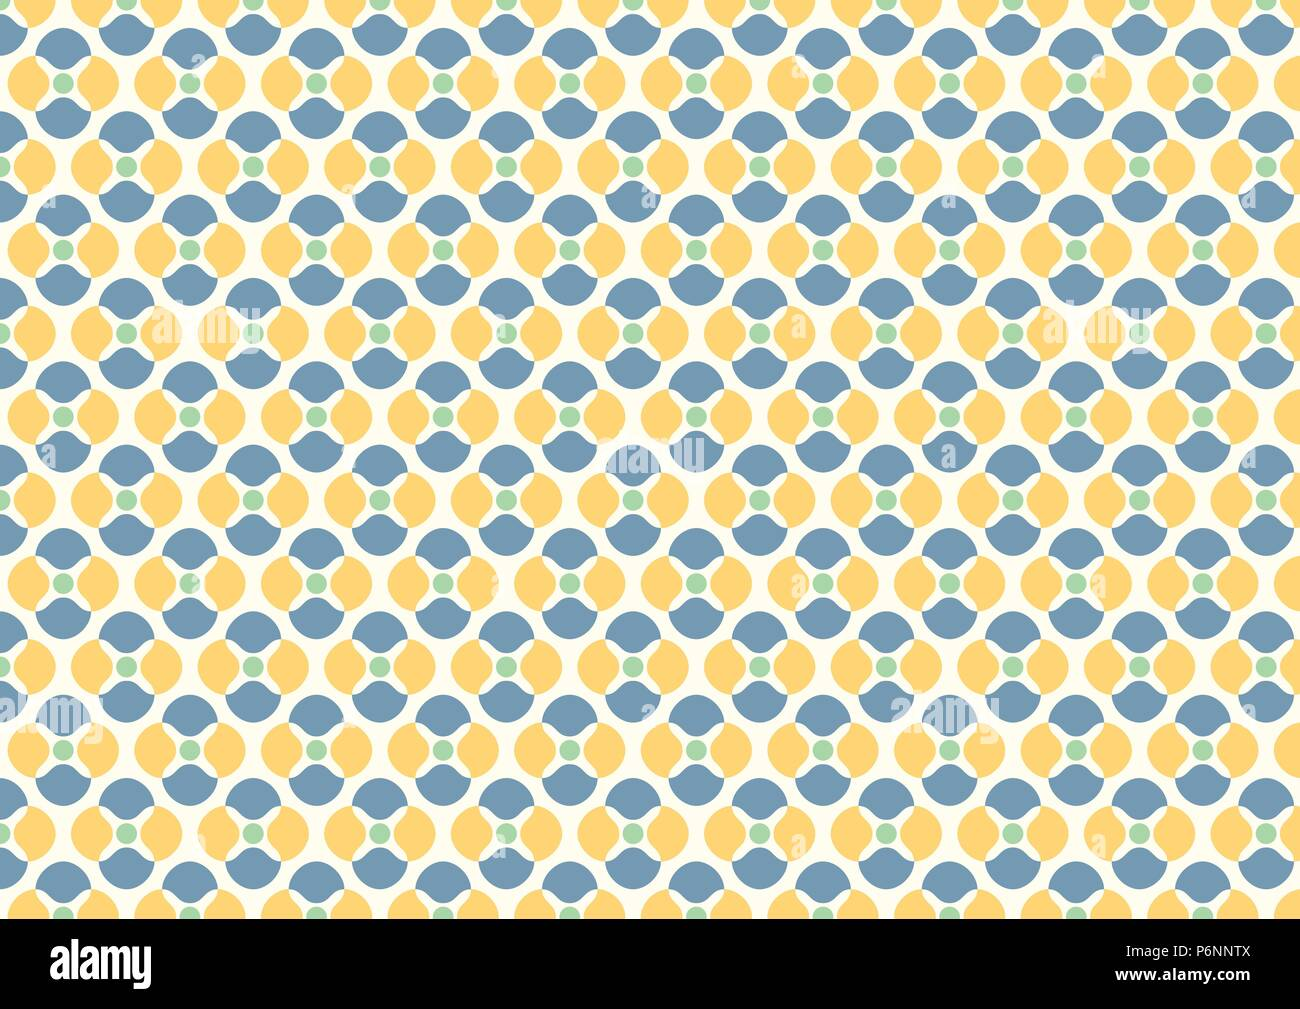 Abstract blossom and small circle seamless pattern on light yellow background. Vintage and sweet flower pattern for design. - Stock Image